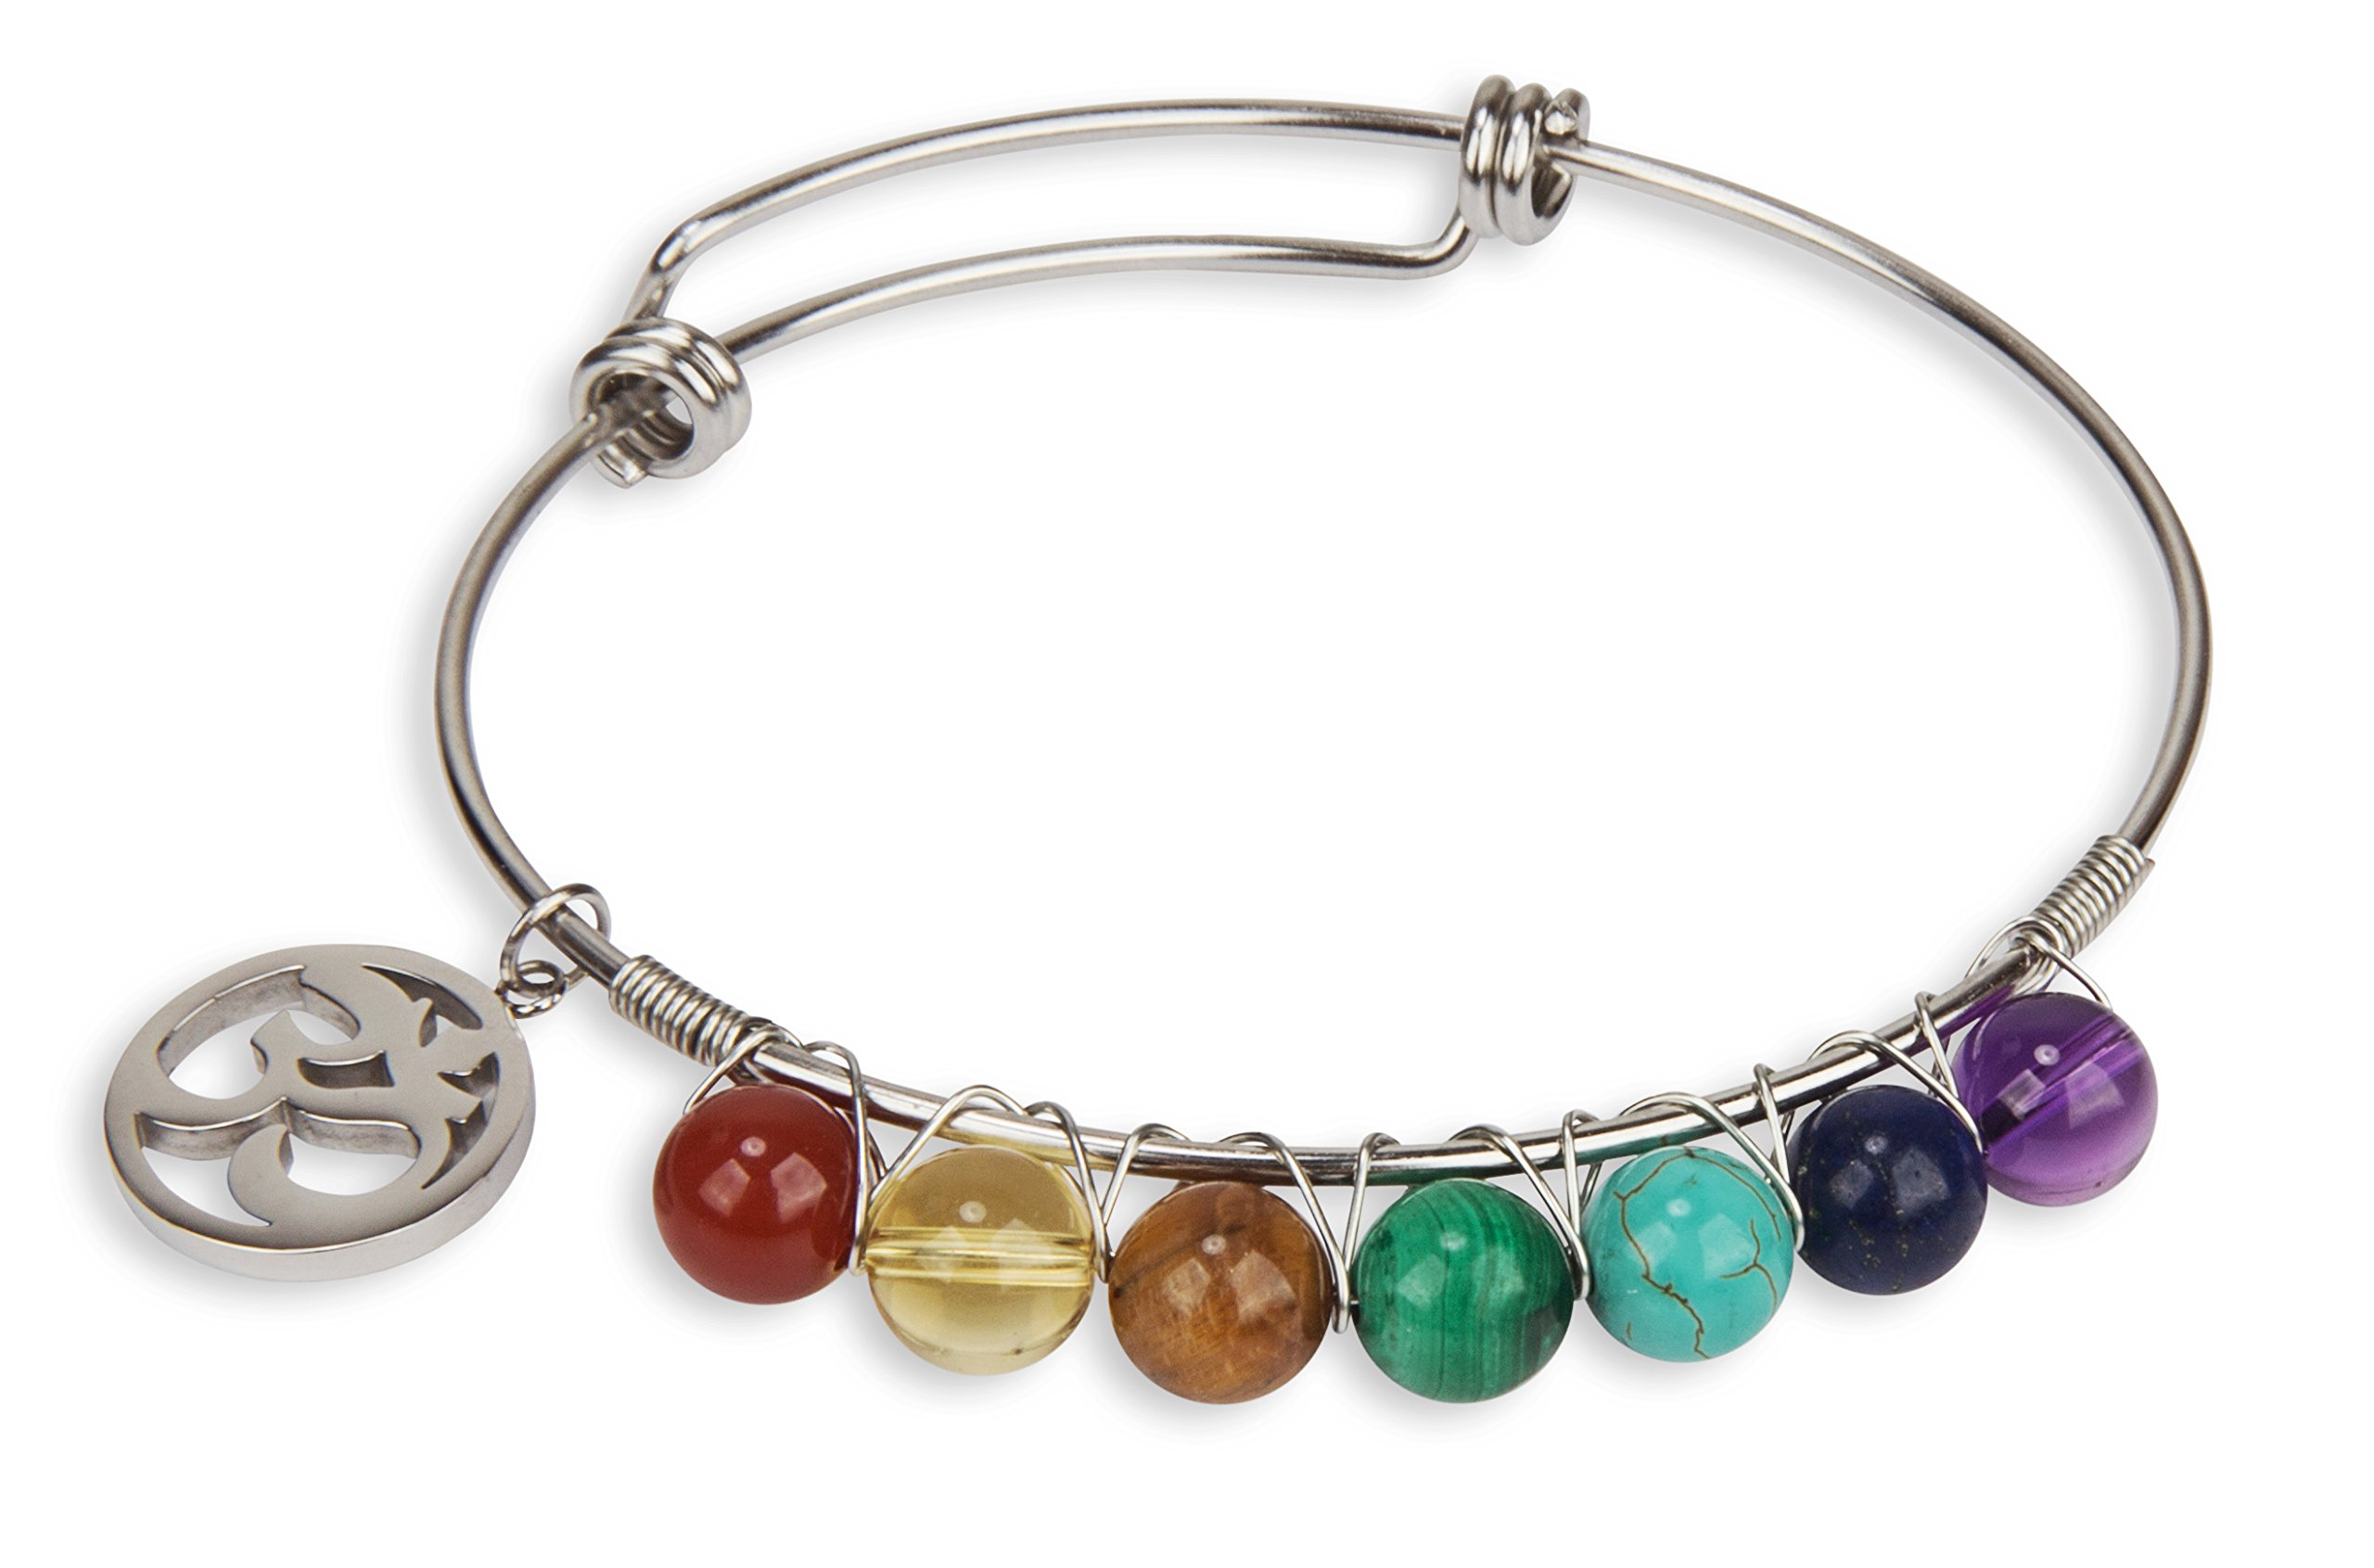 SPUNKYsoul 7 Chakra Stone Genuine Crystal Bracelet Bangle with Om Charm Stainless Steel for Women Collection